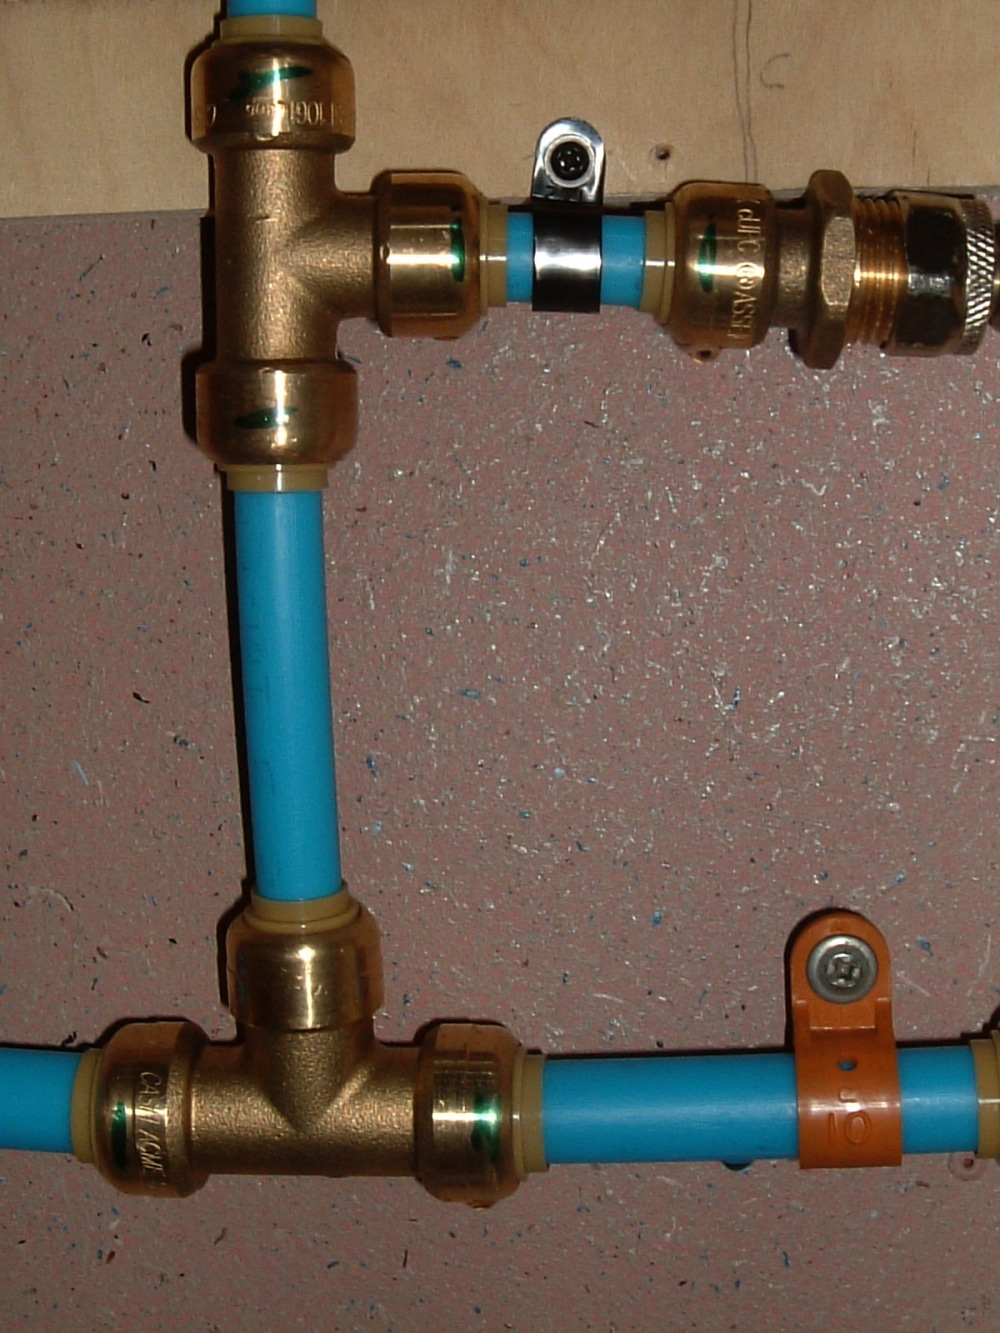 hight resolution of let me tell you a story about pex i ve sweat soldered copper pipe fittings in all the houses i ve worked on but i chose to use pex this time owing to it